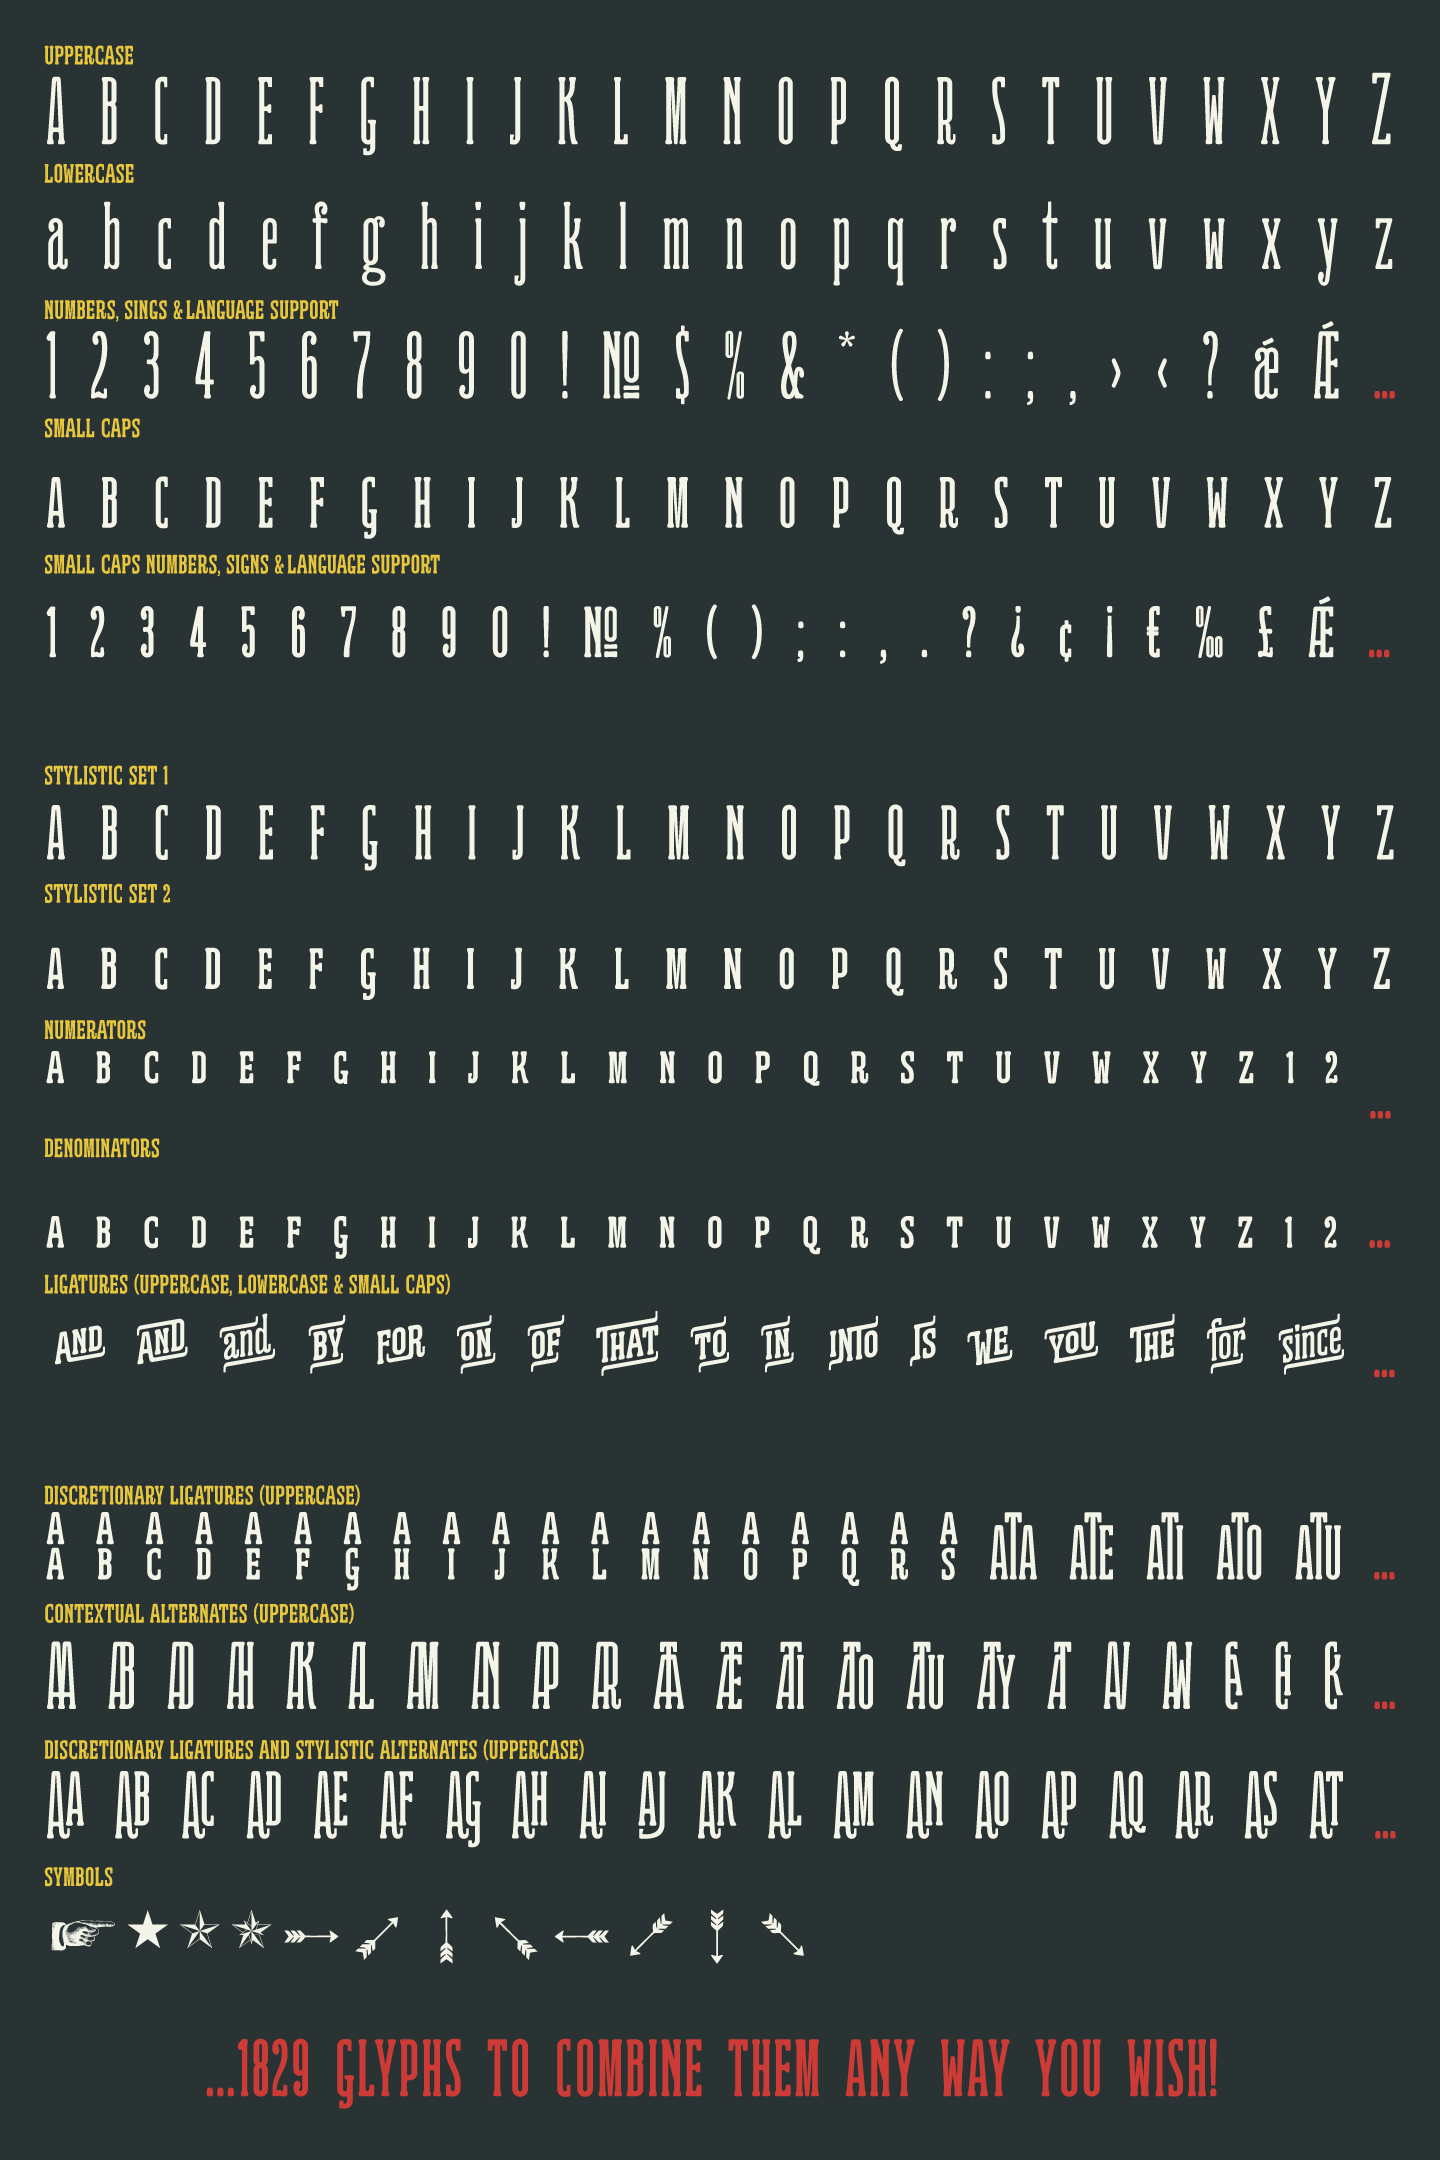 Characters and OpenType features.